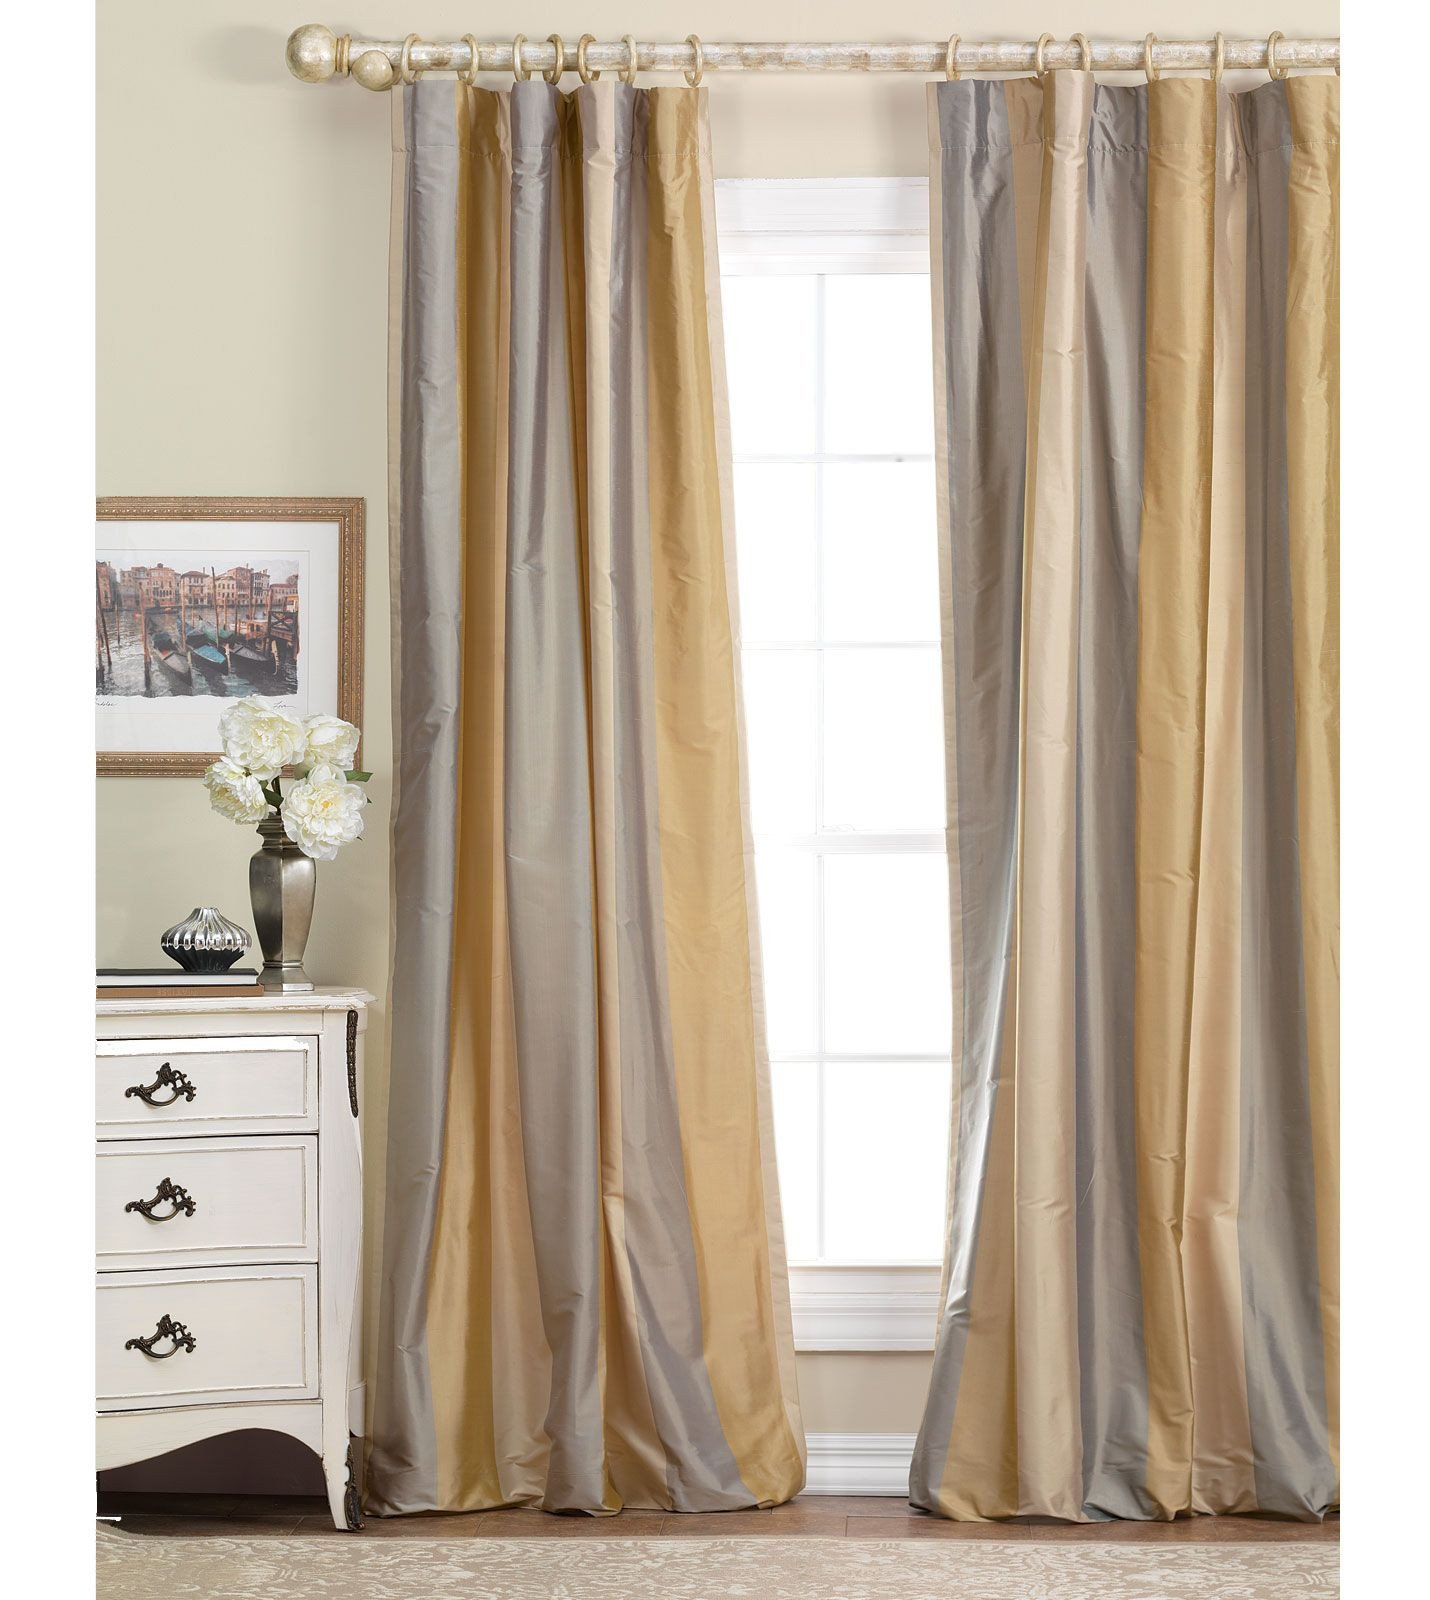 Black and Gold Bedroom Accessories Beautiful Gold and Gray Silk Curtains